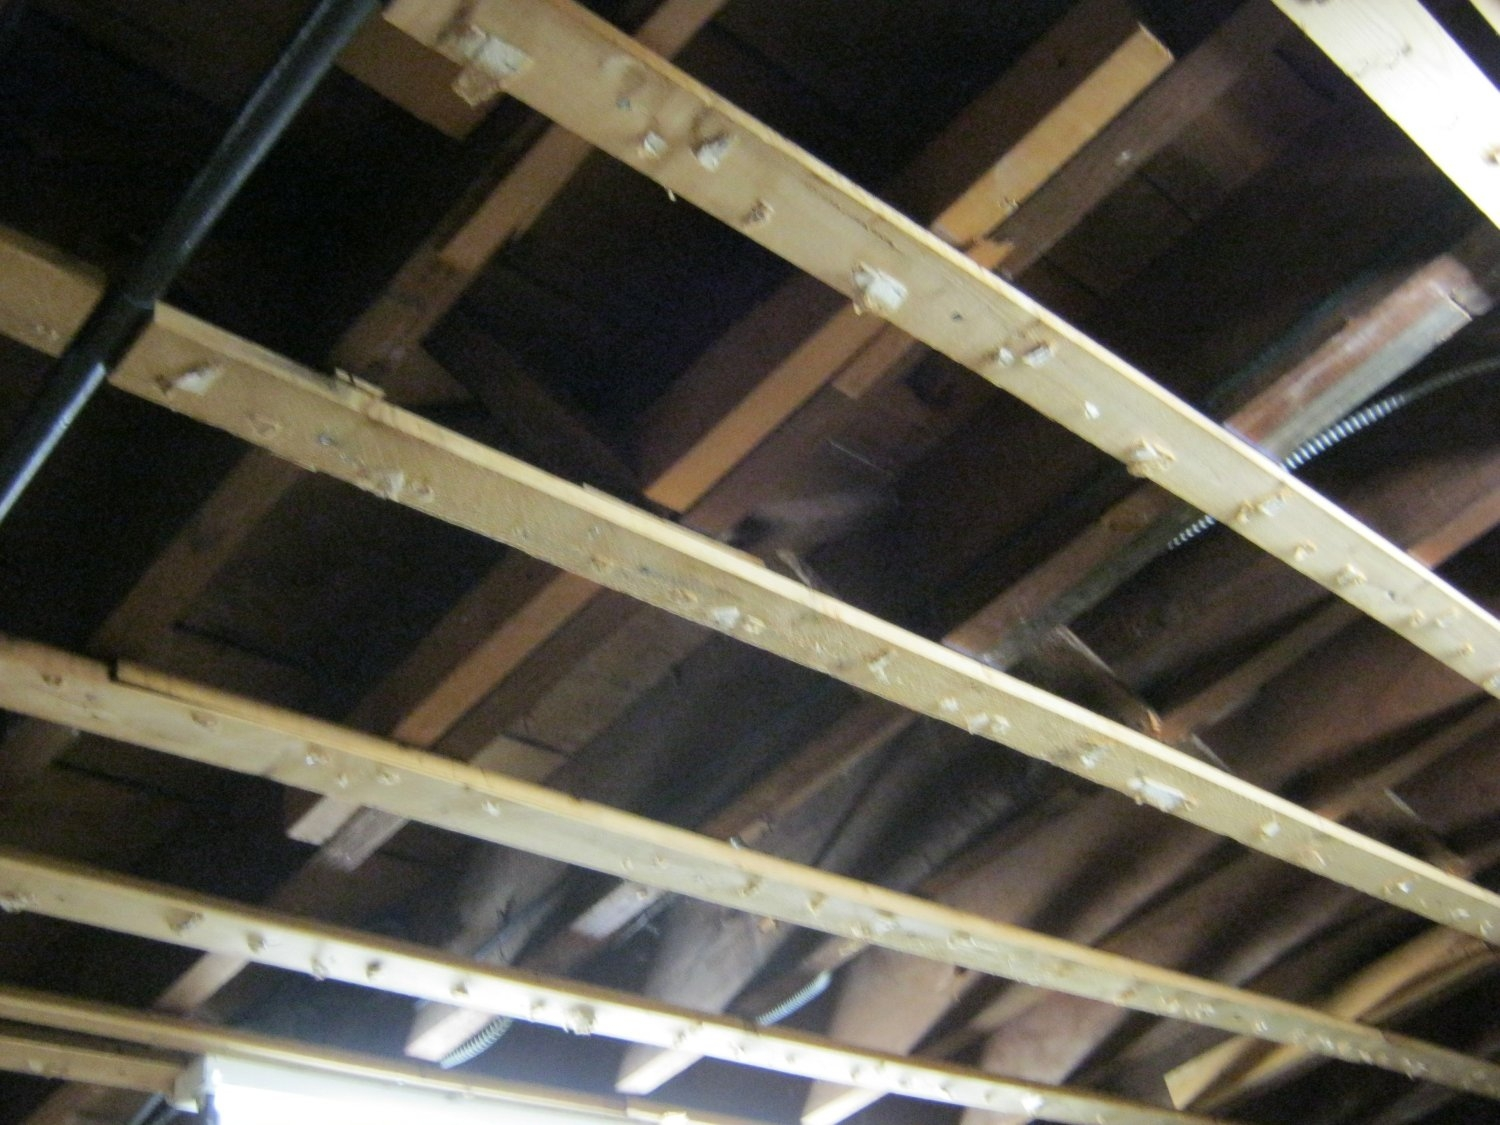 Soundproof Basement Ceiling Without Drywall • BASEMENT